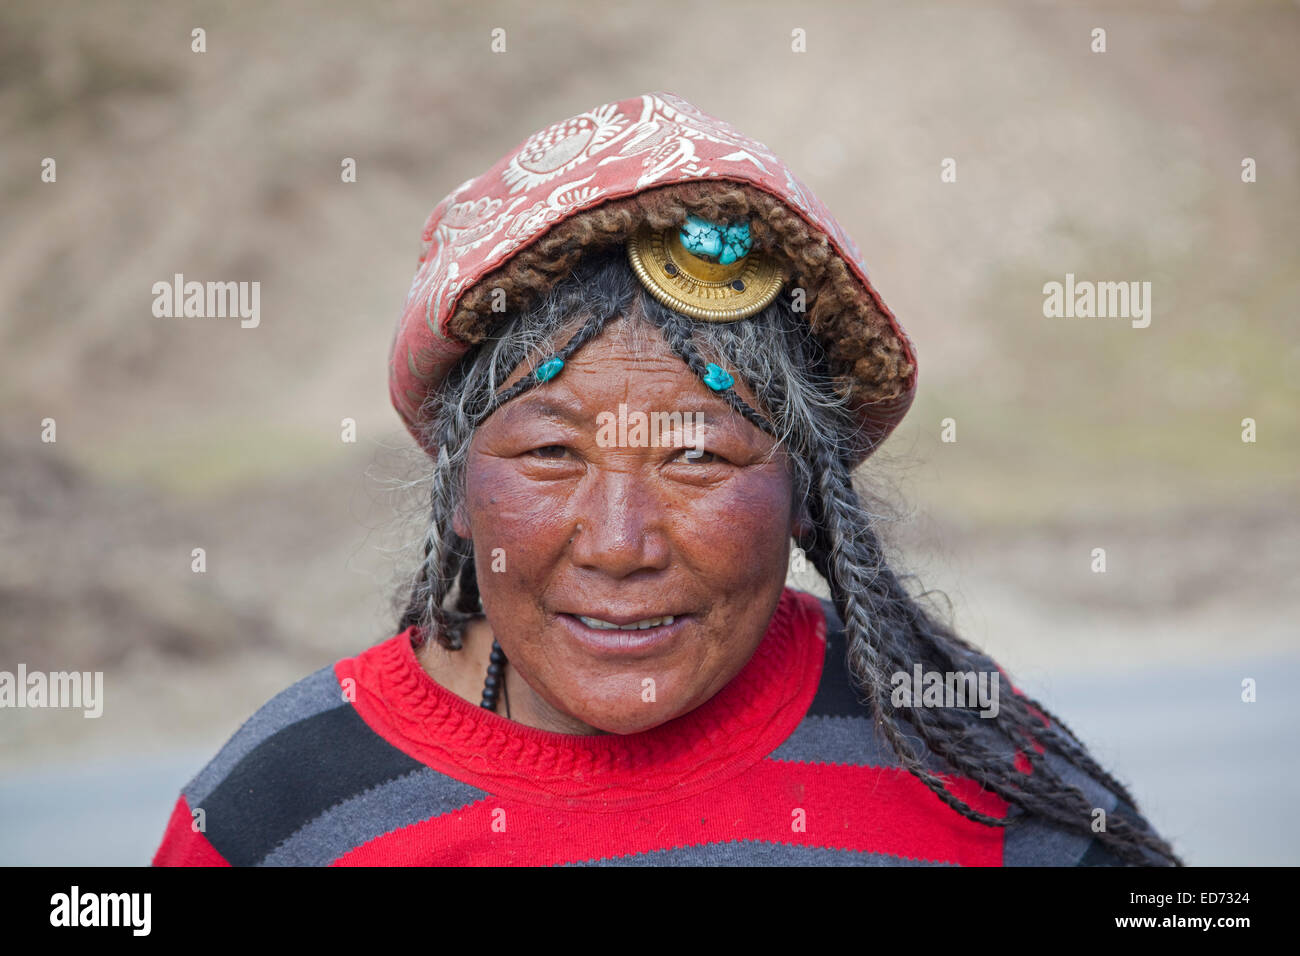 Portrait of Tibetan Khampa woman wearing traditional amber hair piece at Zhuqing, Sichuan Province, China - Stock Image